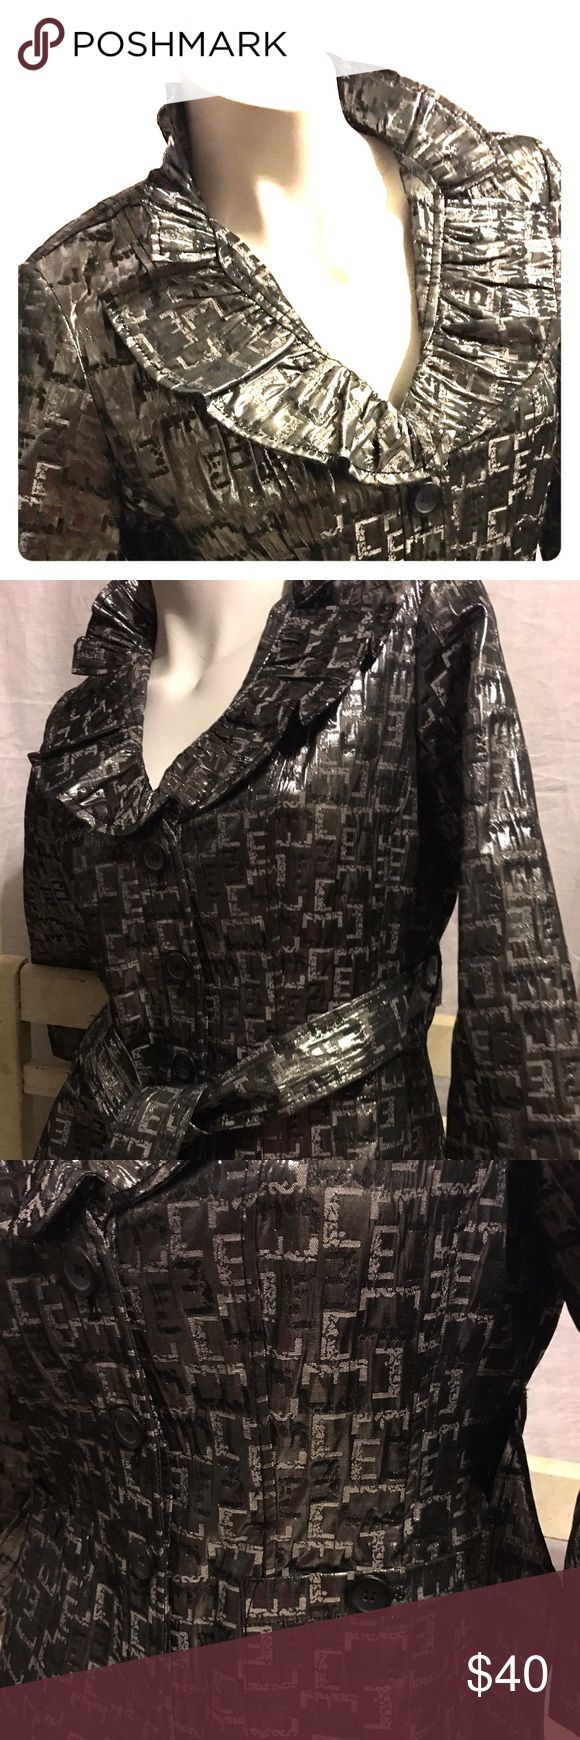 Silver Dressy Jacket So beautiful shimmery silver blazer with an 1/2 circle collar that accents your collarbone. Very sexy button up or over a delicate shell. Ruby Rd Jackets & Coats Blazers